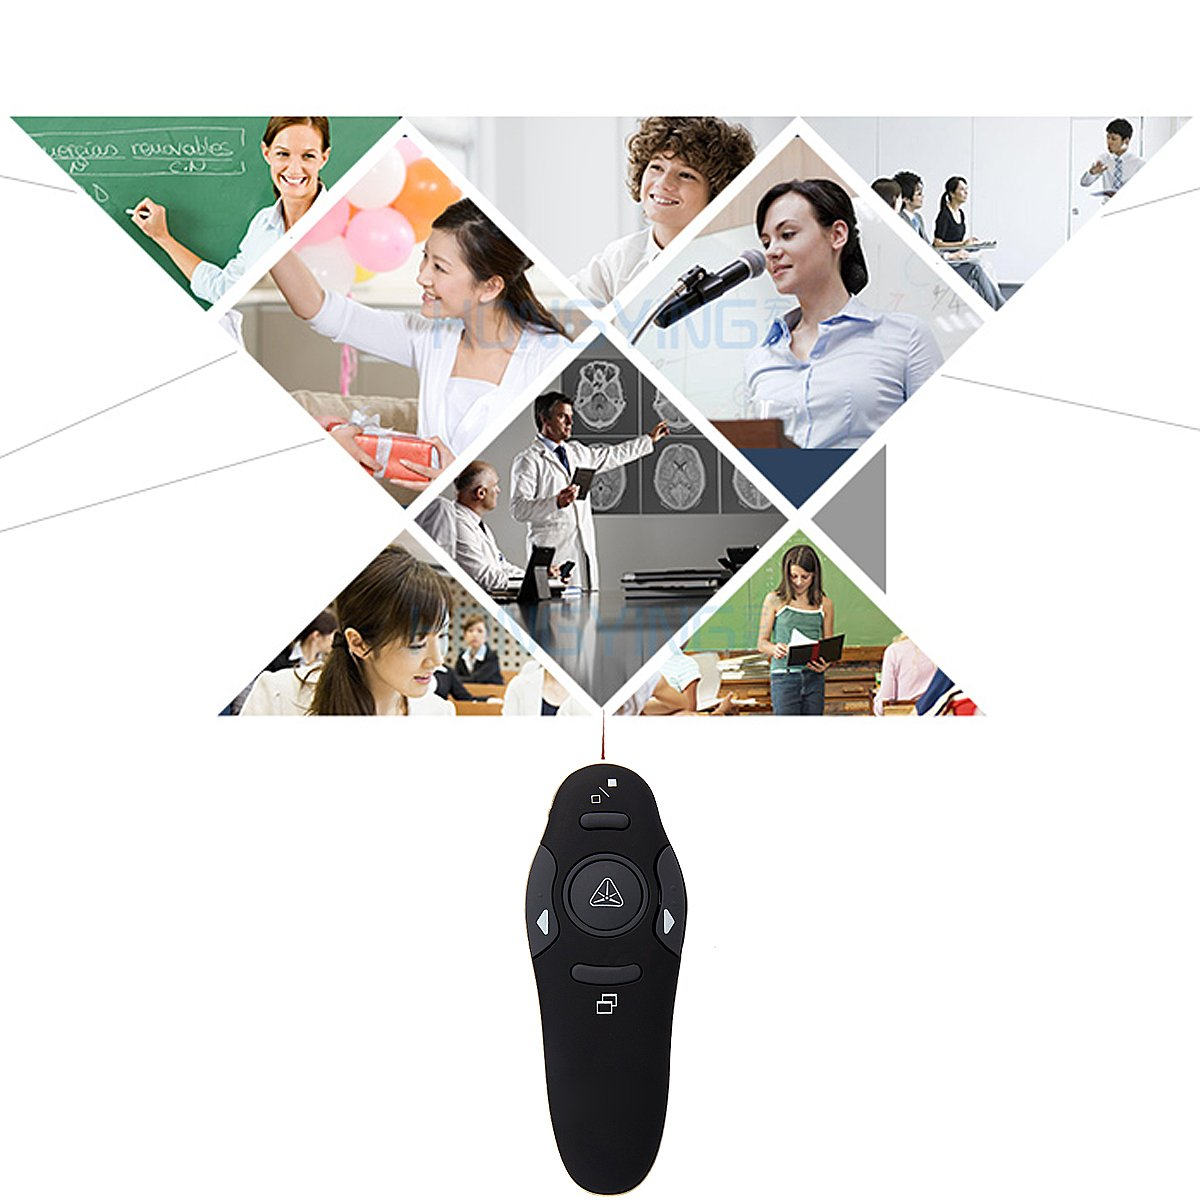 Black MOCREO/®Professional 2.4GHz Wireless Presenter//Laser Pointer//Powerpoint Presentation Remote Controller Support with a Plug-and-play Wireless USB Receiver Compatible W//Every System